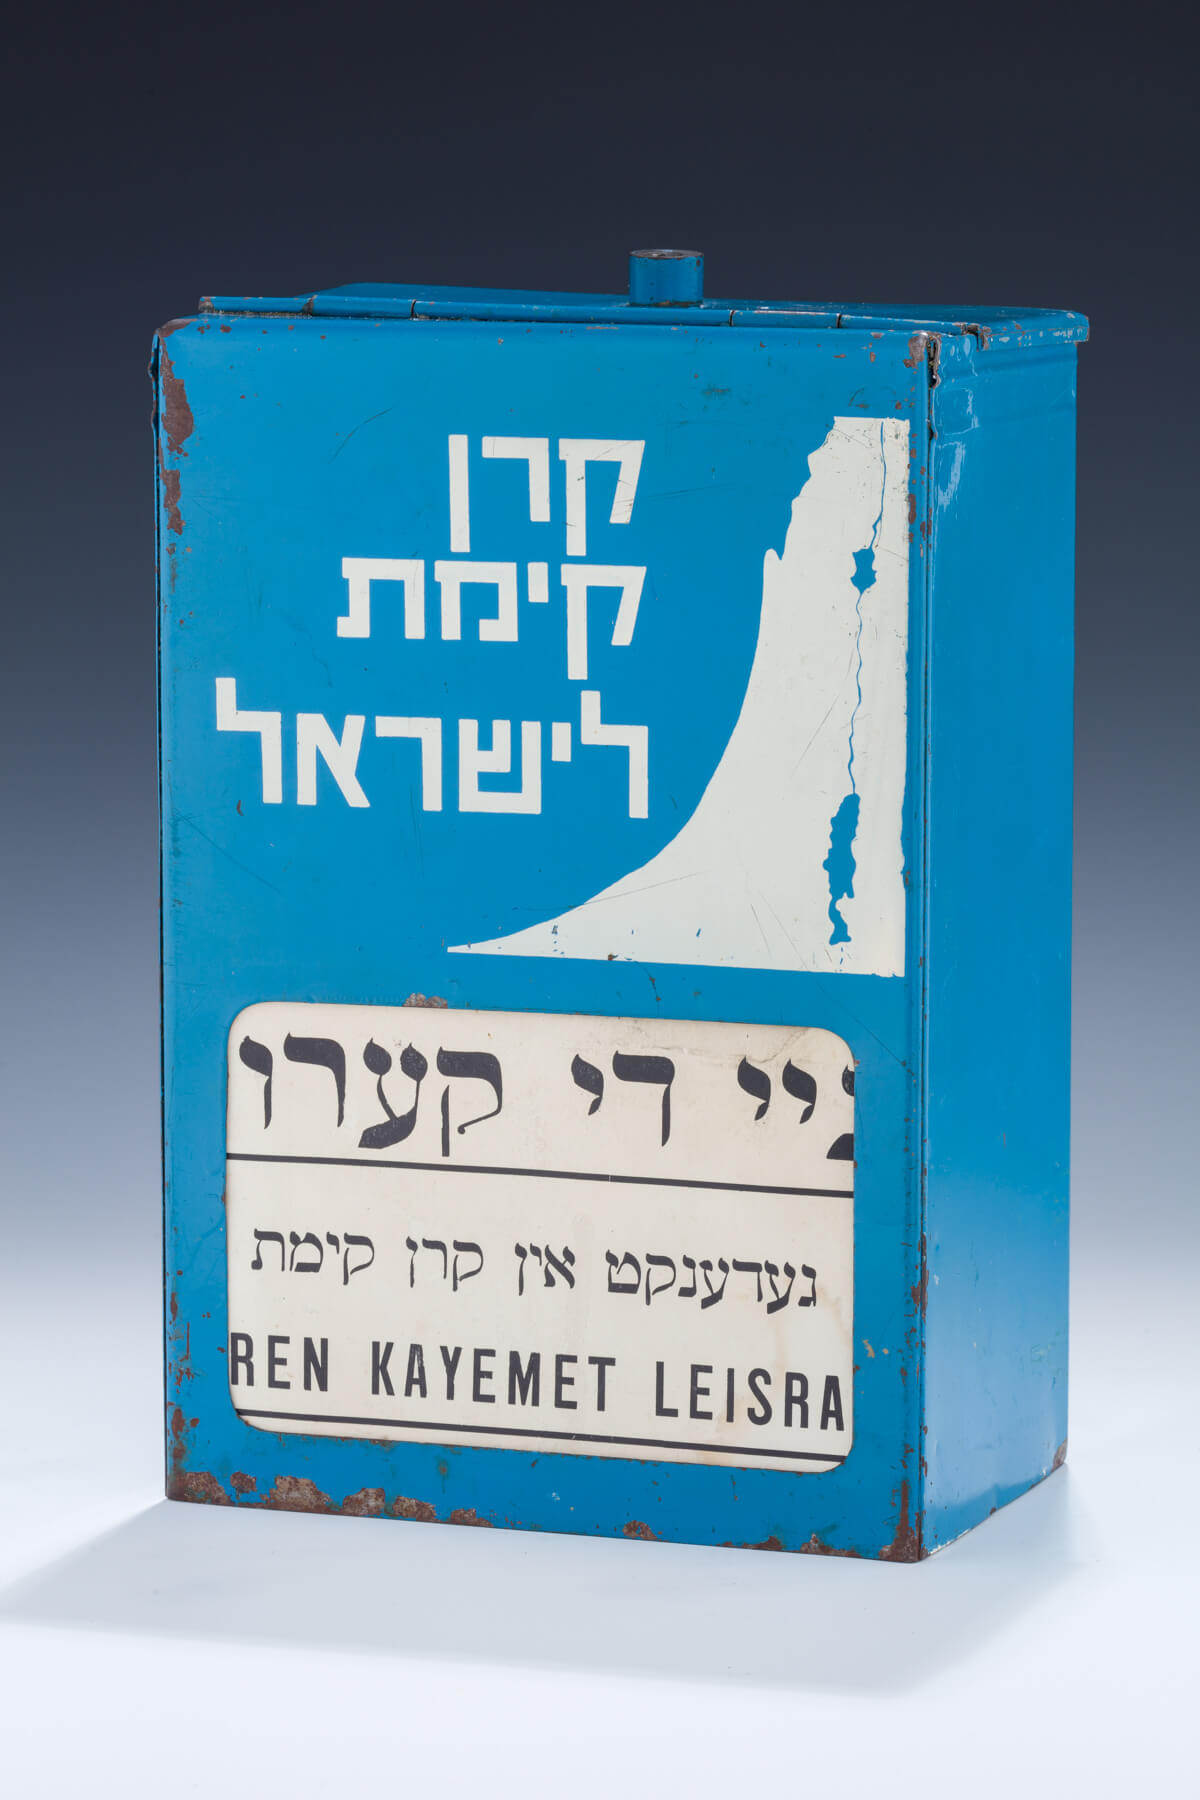 124. A Large Jnf Charity Box